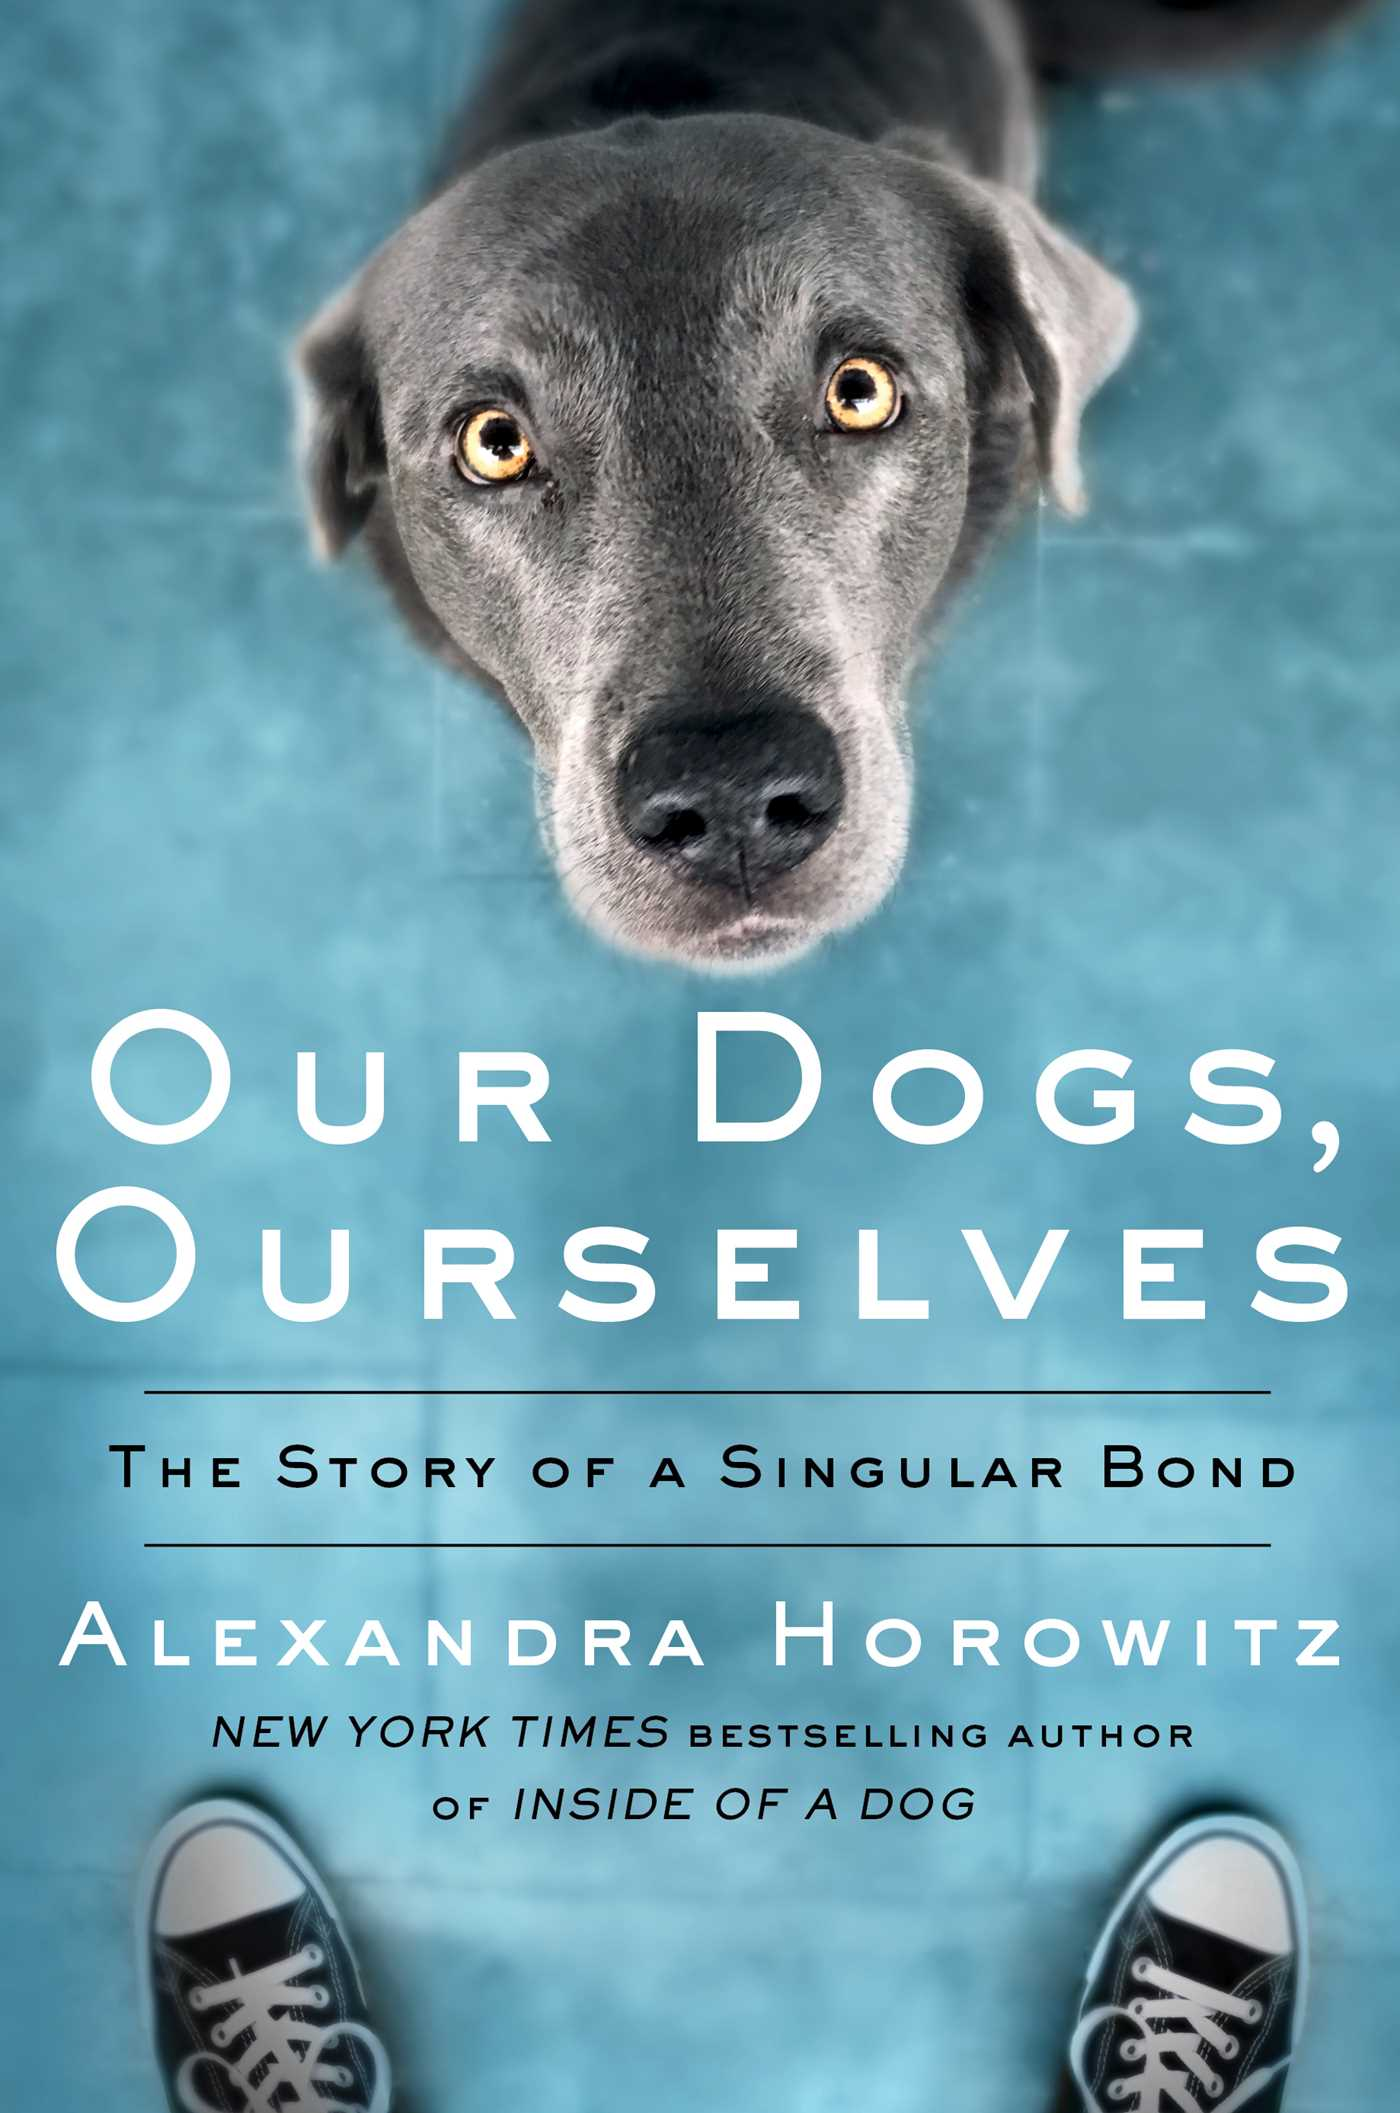 Our dogs, ourselves : the story of a singular bond by